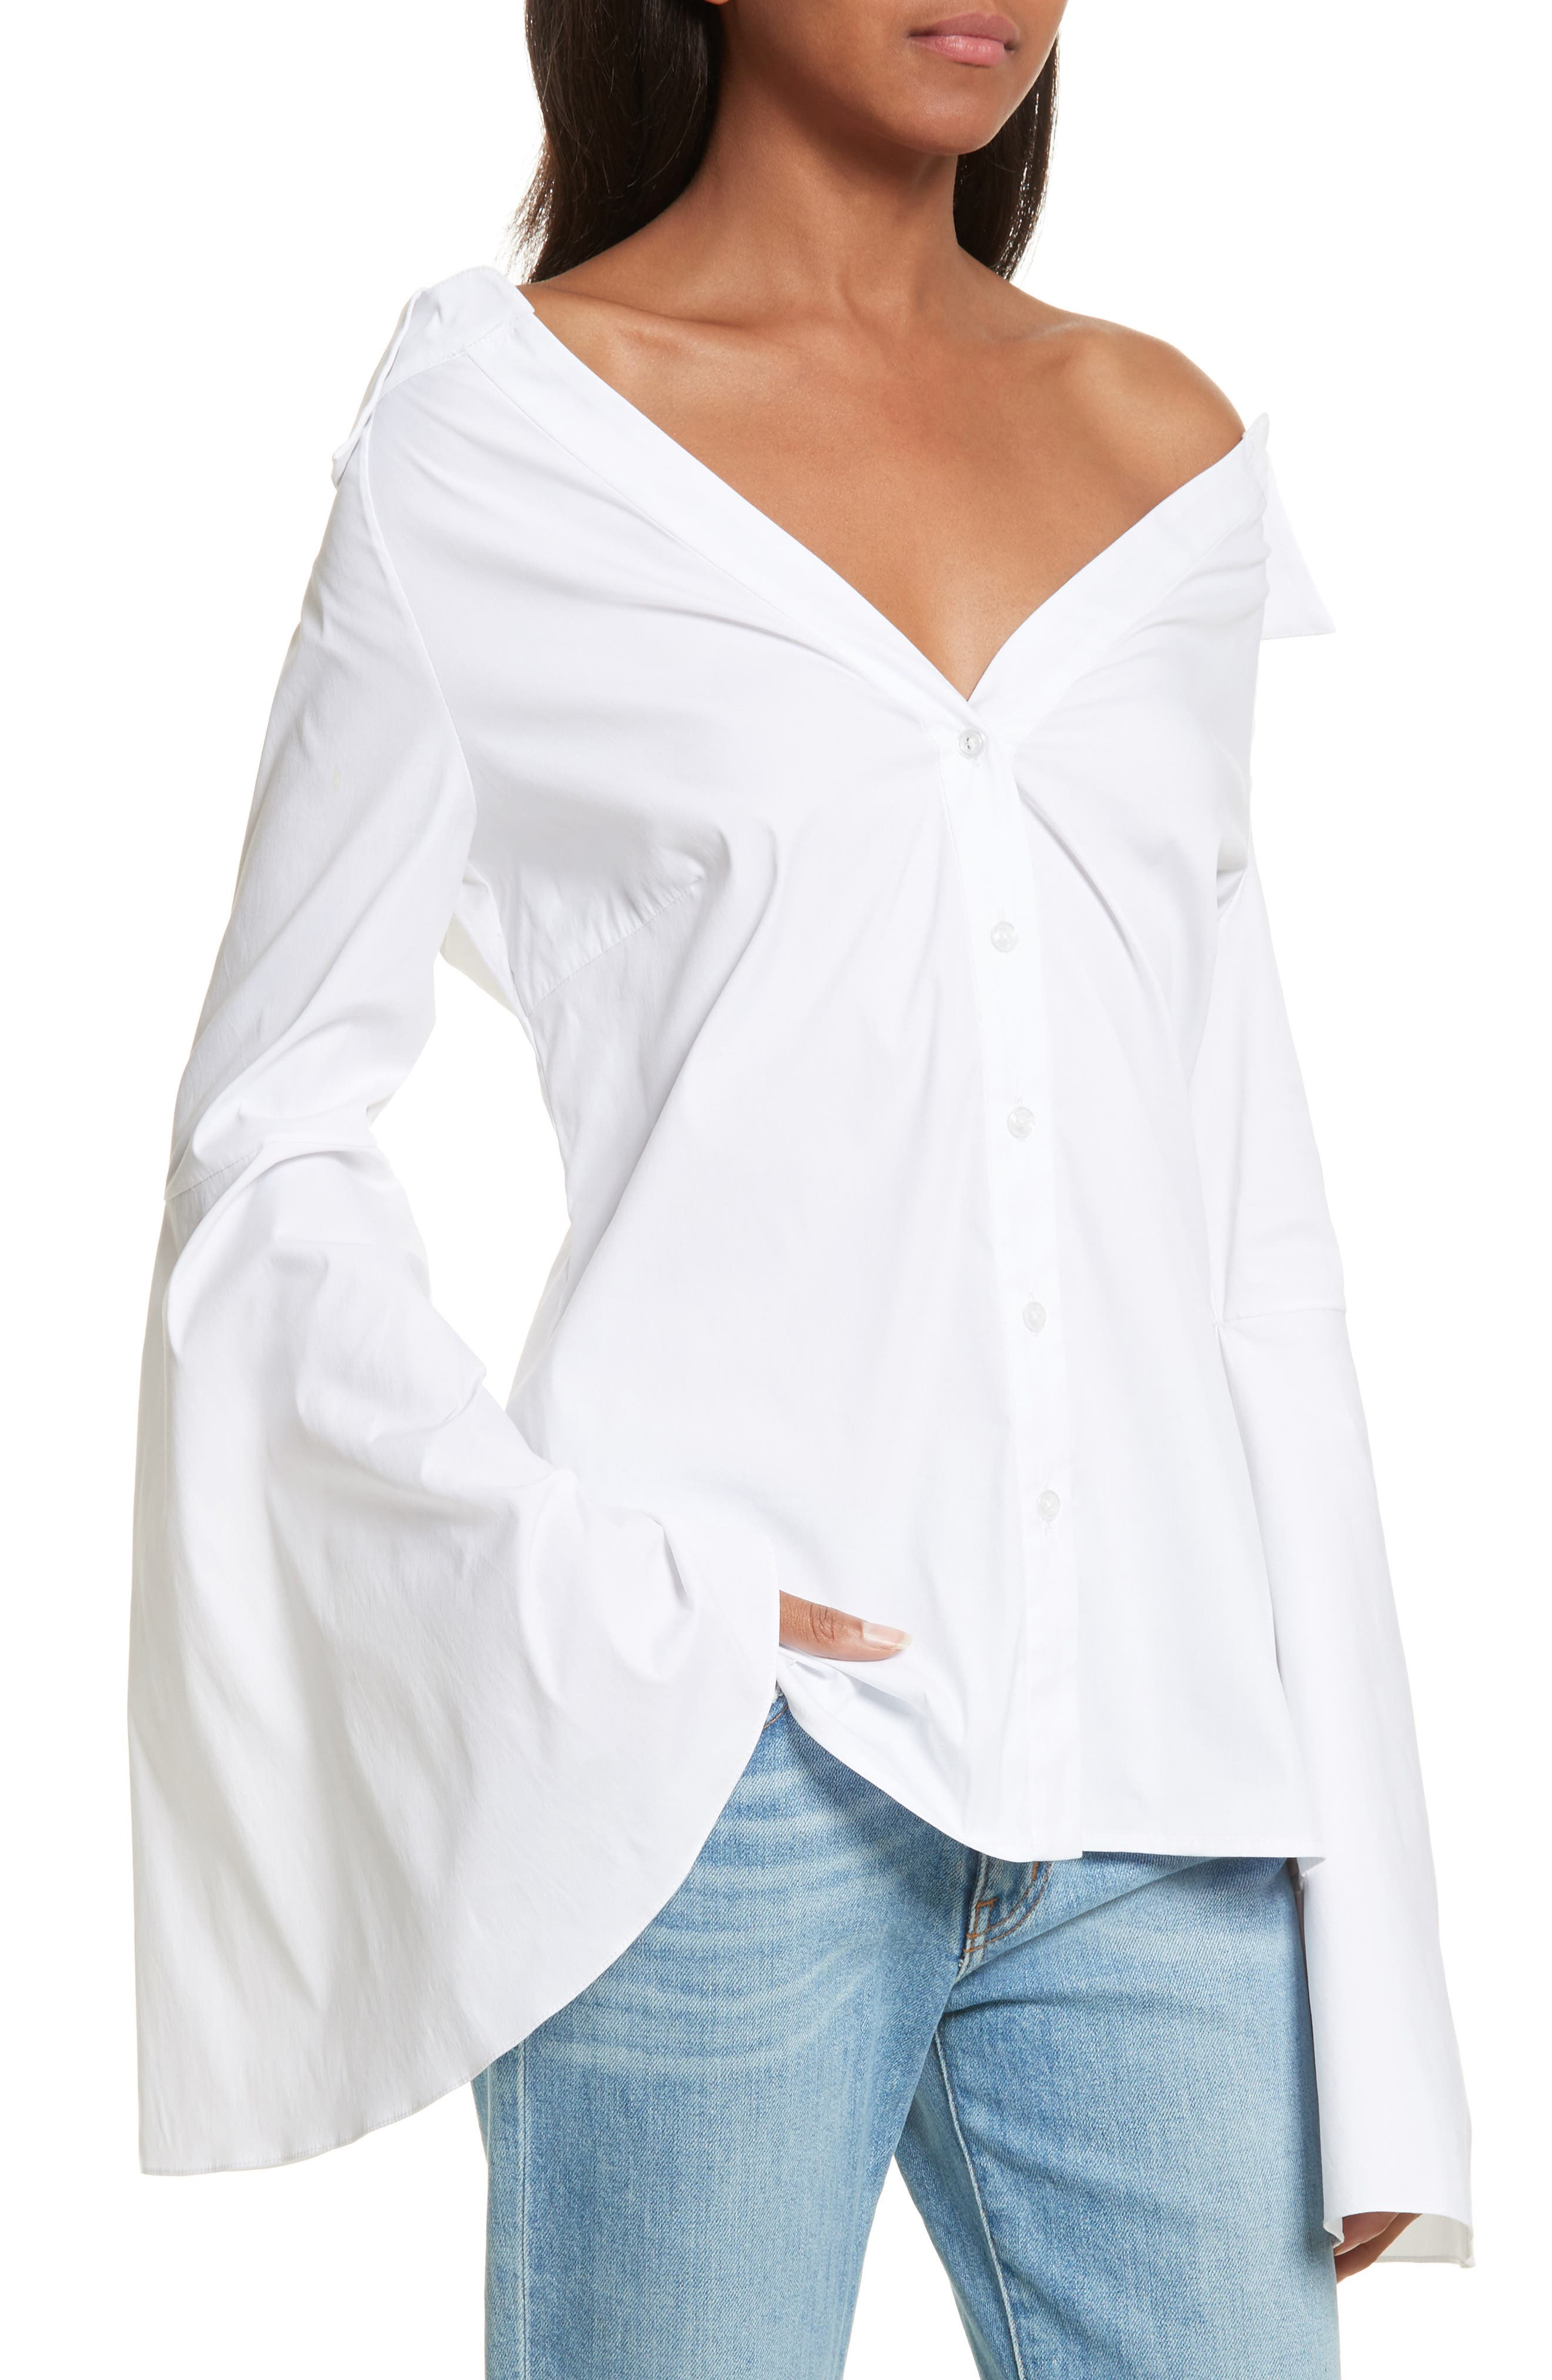 Persephone Off the Shoulder Top,                             Alternate thumbnail 3, color,                             White